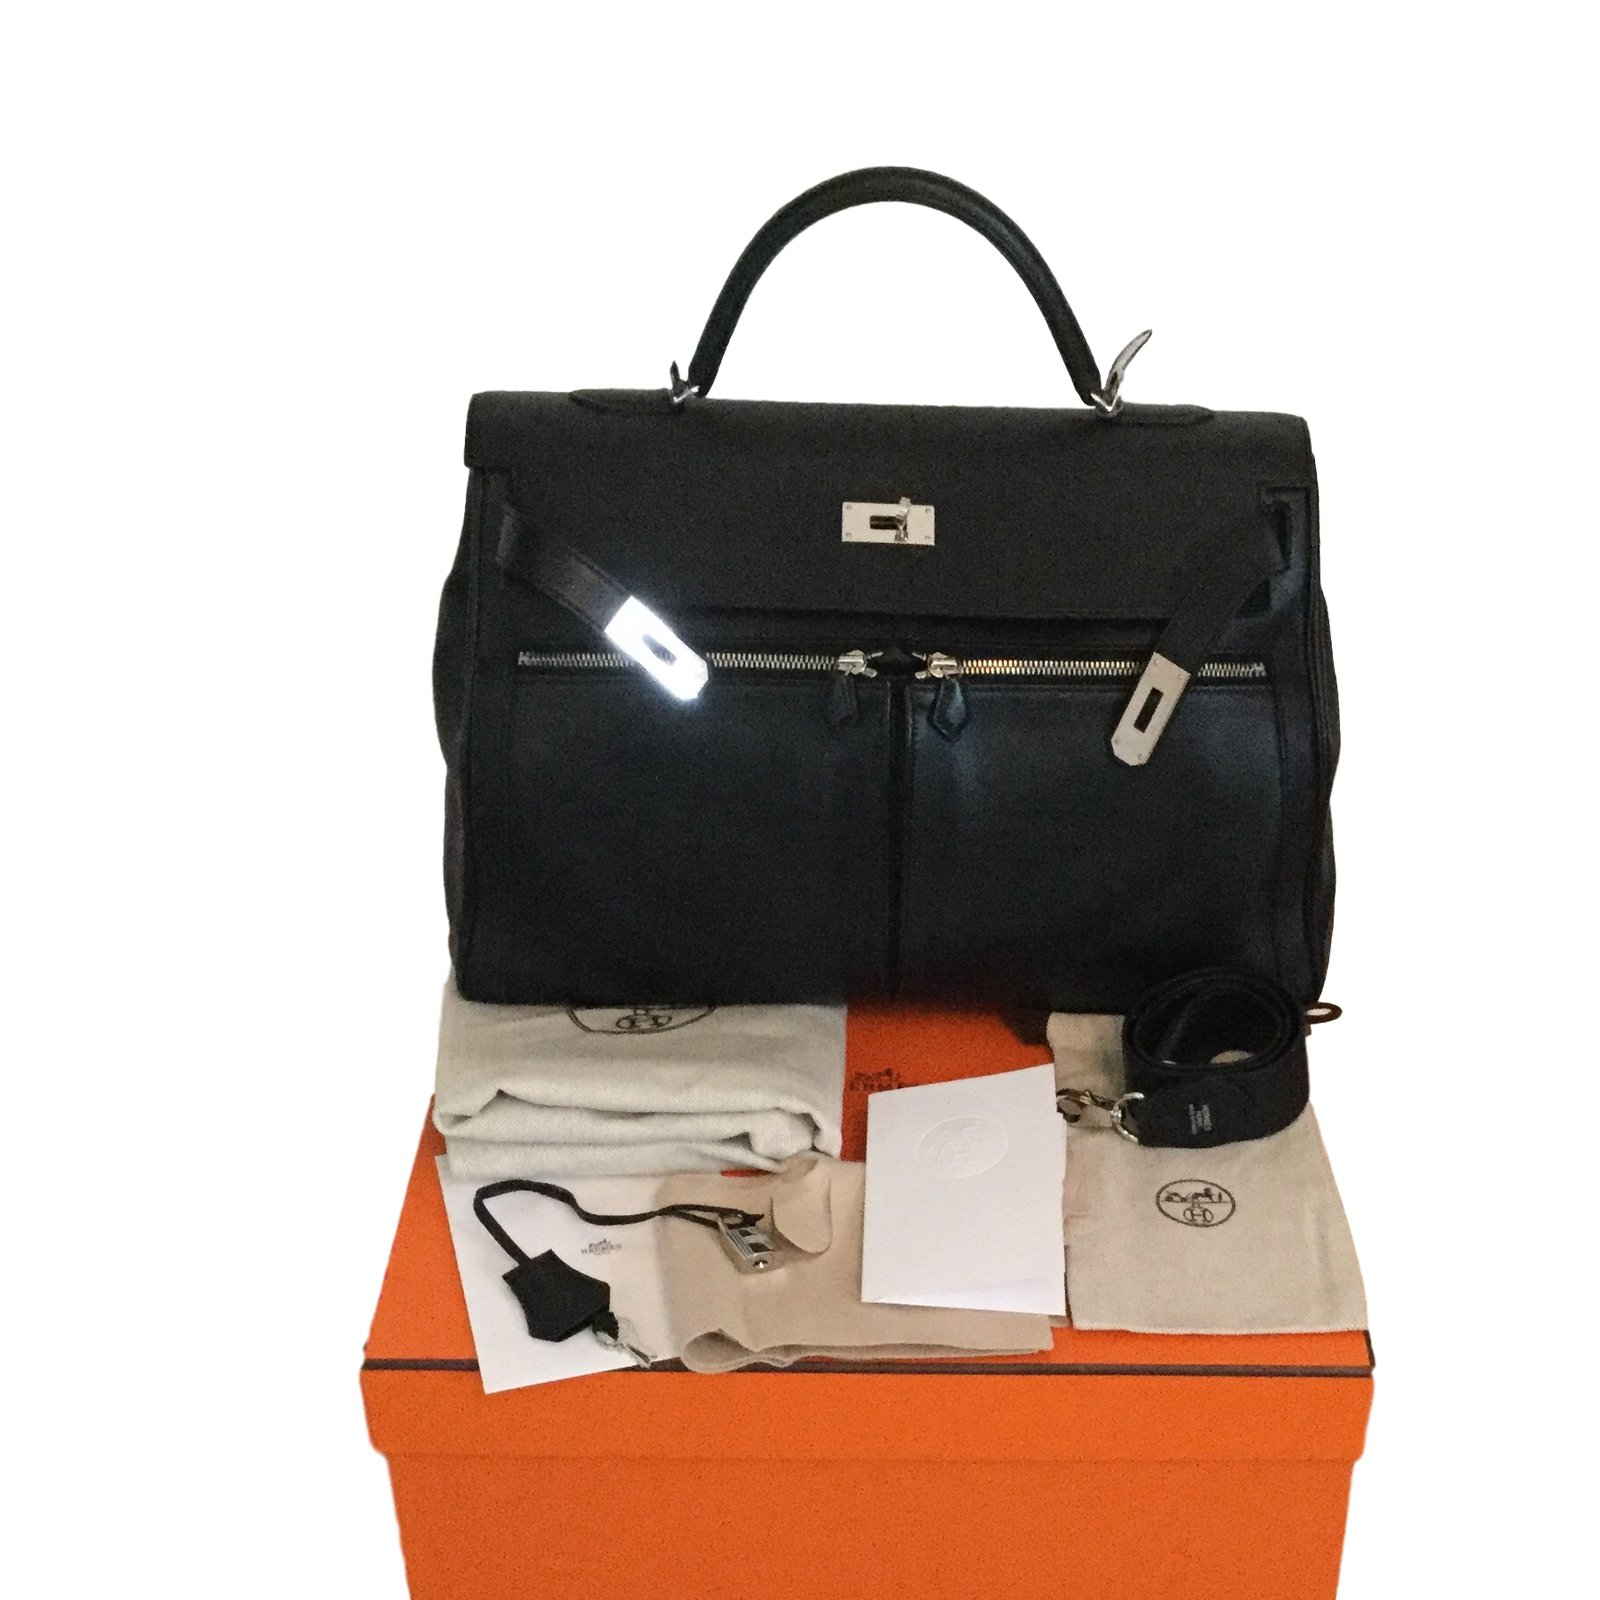 Model Hermu00e8s Birkin 35 - Handbags - HER23876 | The RealReal